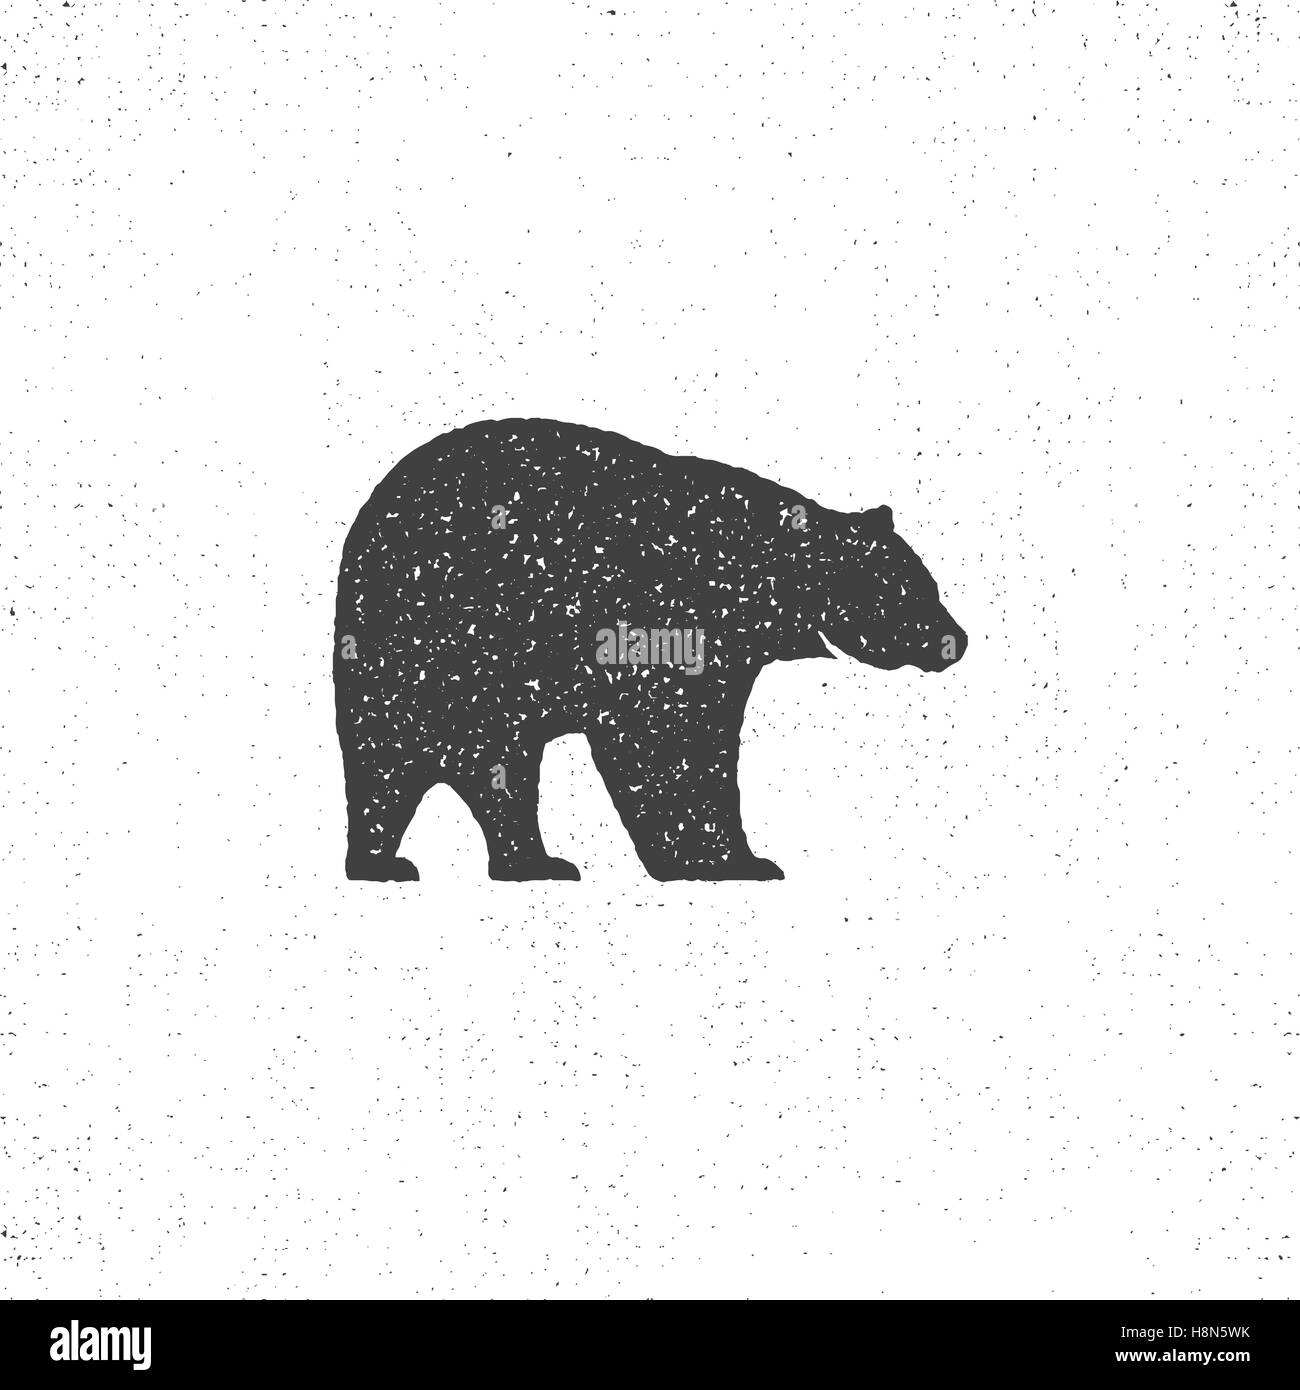 Vintage bear mascot, symbol or icon in rough silhouette style, monochrome design. Can be used for T-shirts print, - Stock Image